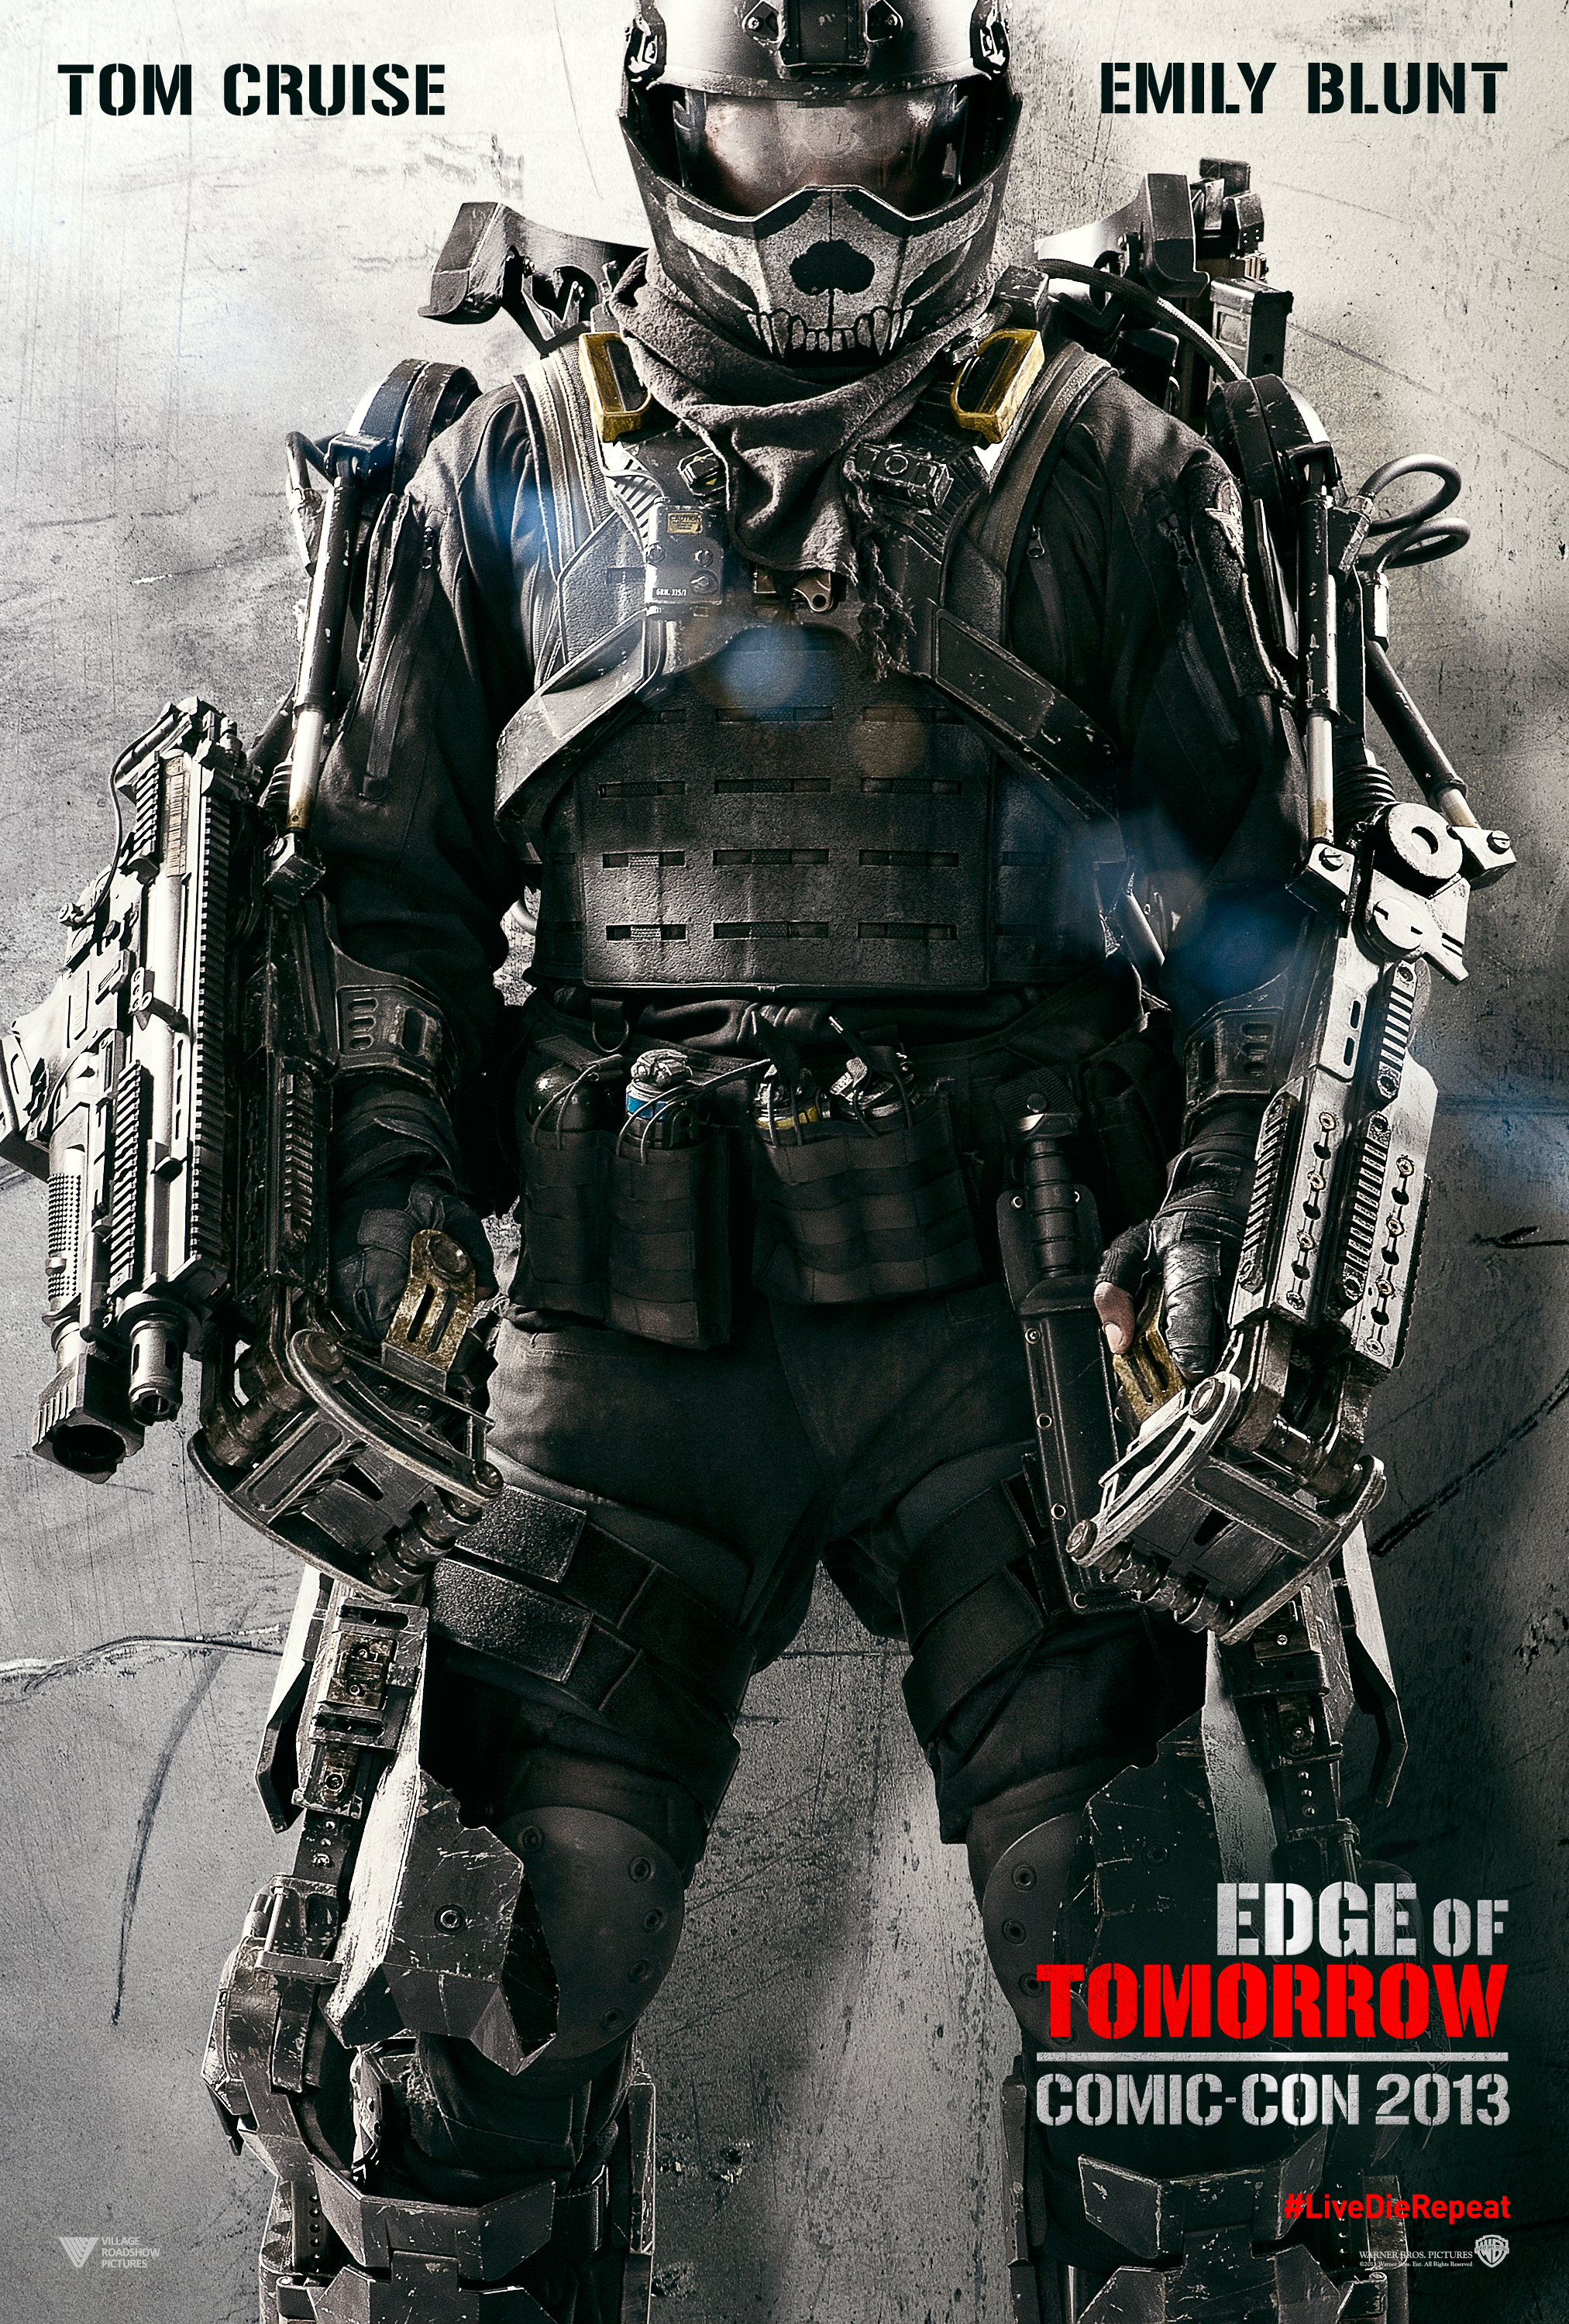 Edge of Tomorrow poster - starring Tom Cruise and Emily Blunt